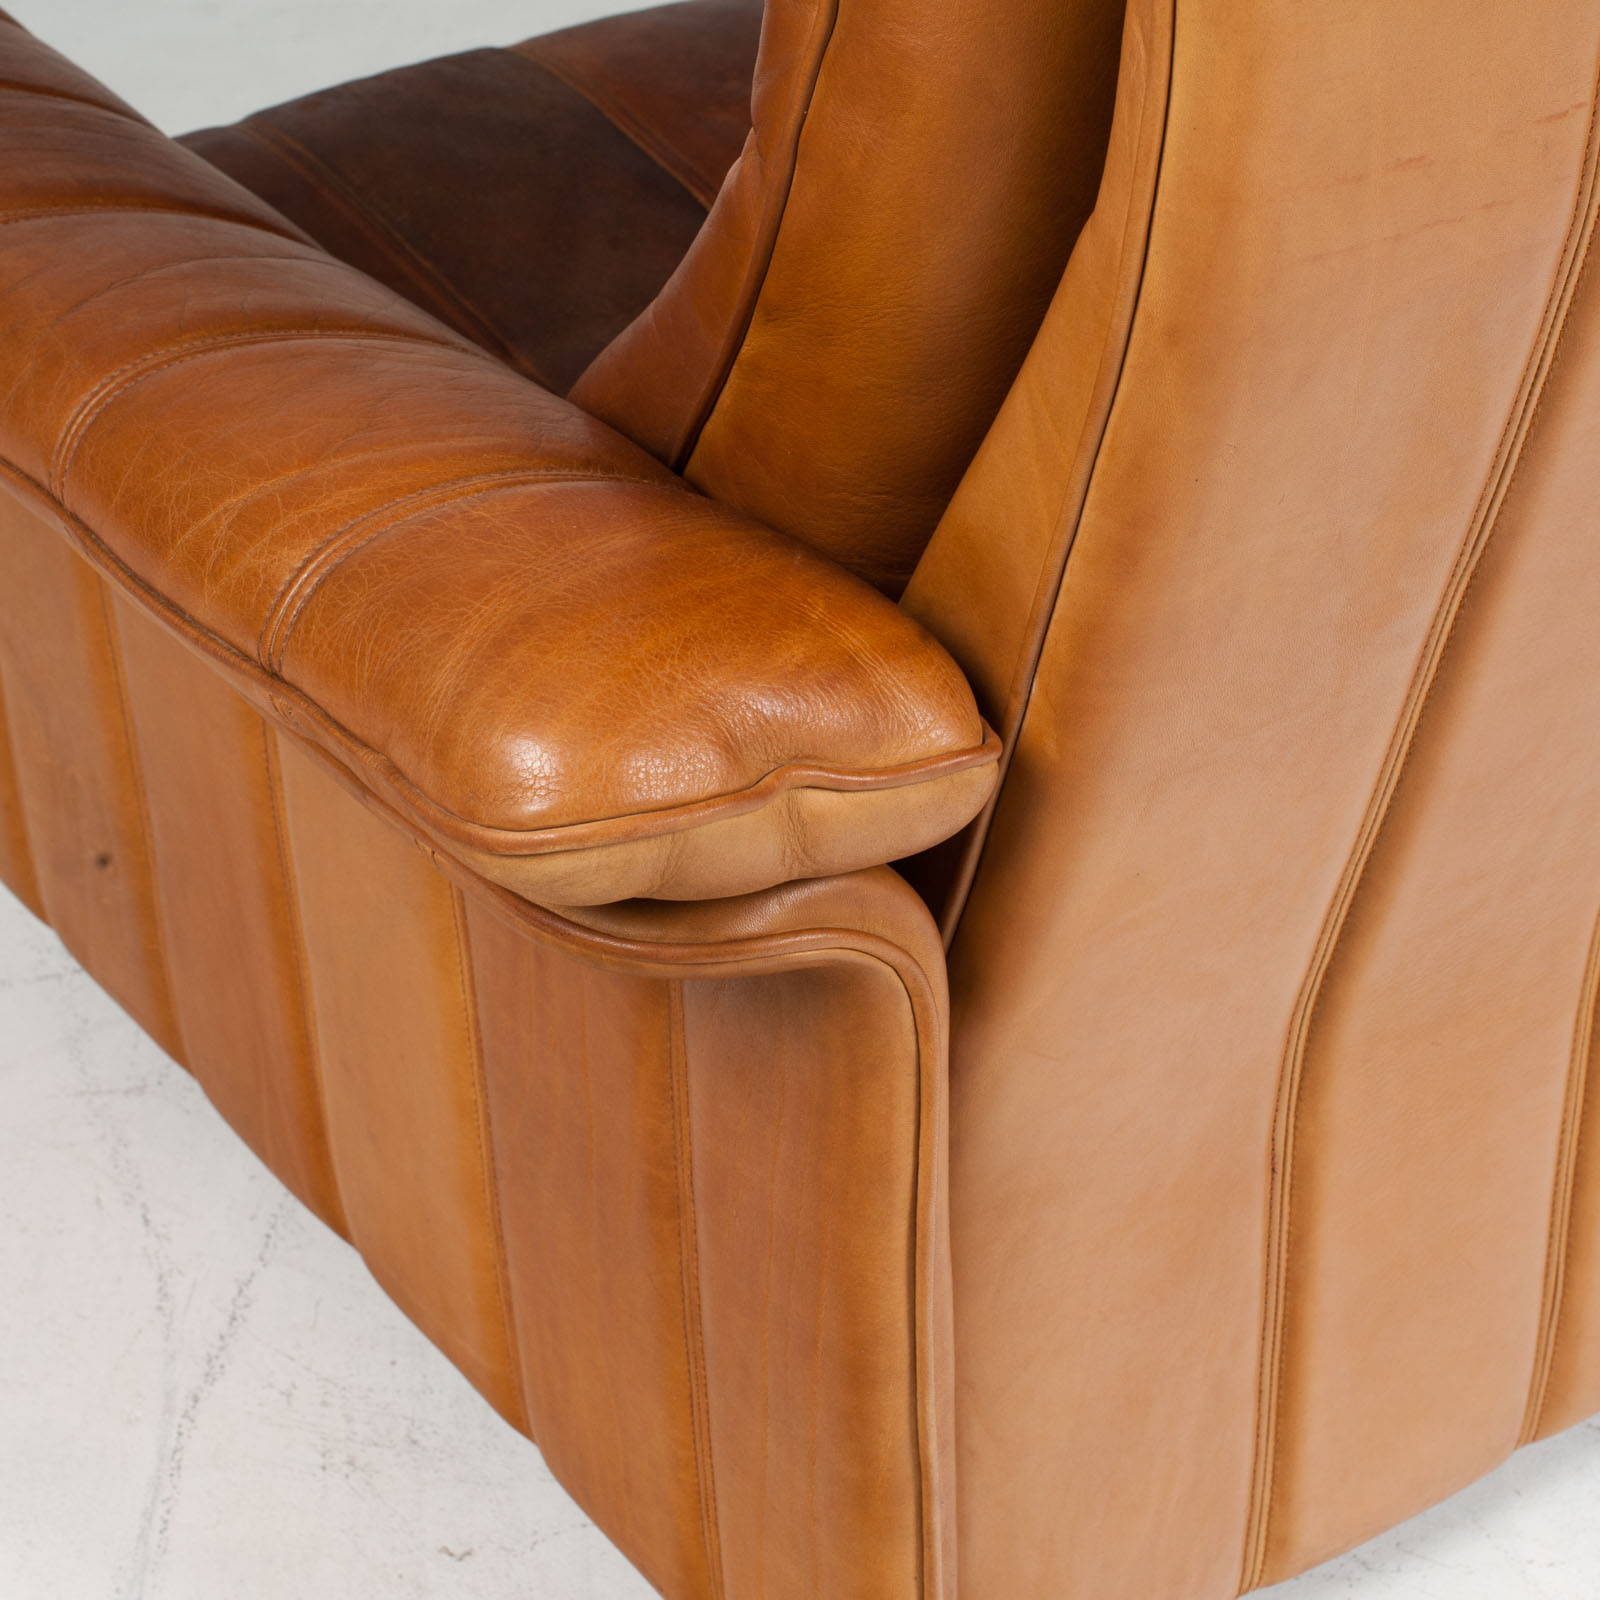 3 Seat Sofa By De Sede In Tan Leather 1970s Switzerland 14